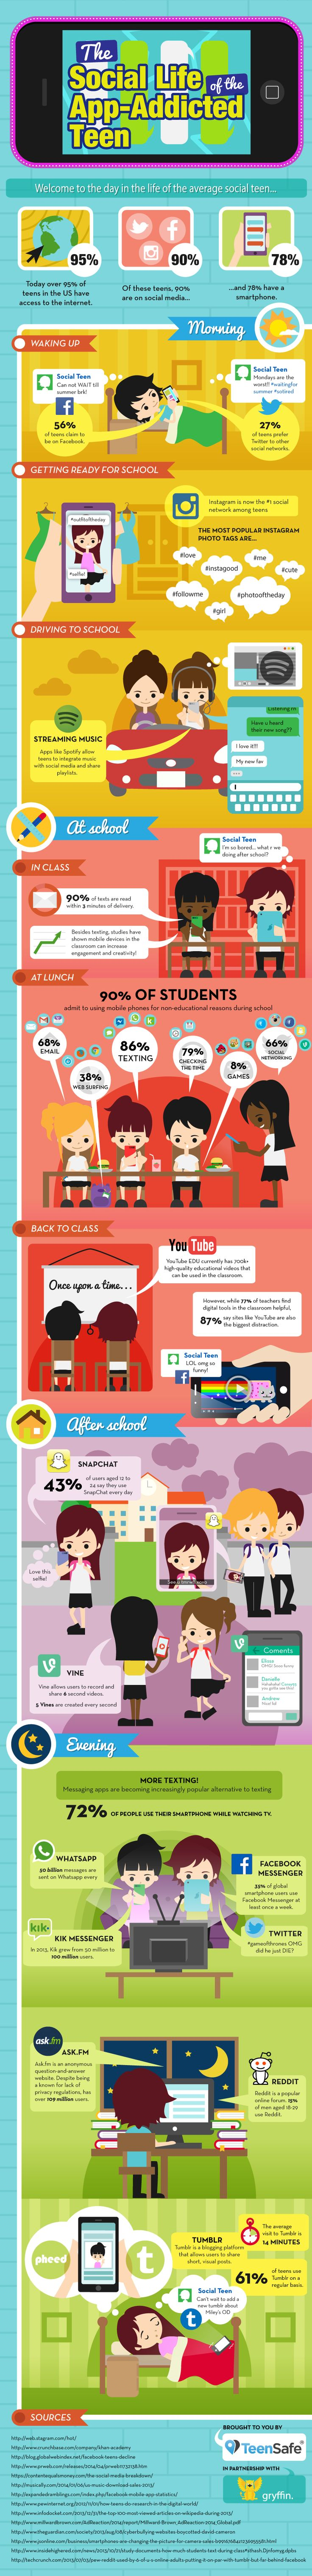 | Superbe! A Day In The Life Of The Average Social Media Teen - #infographic #socialmedia